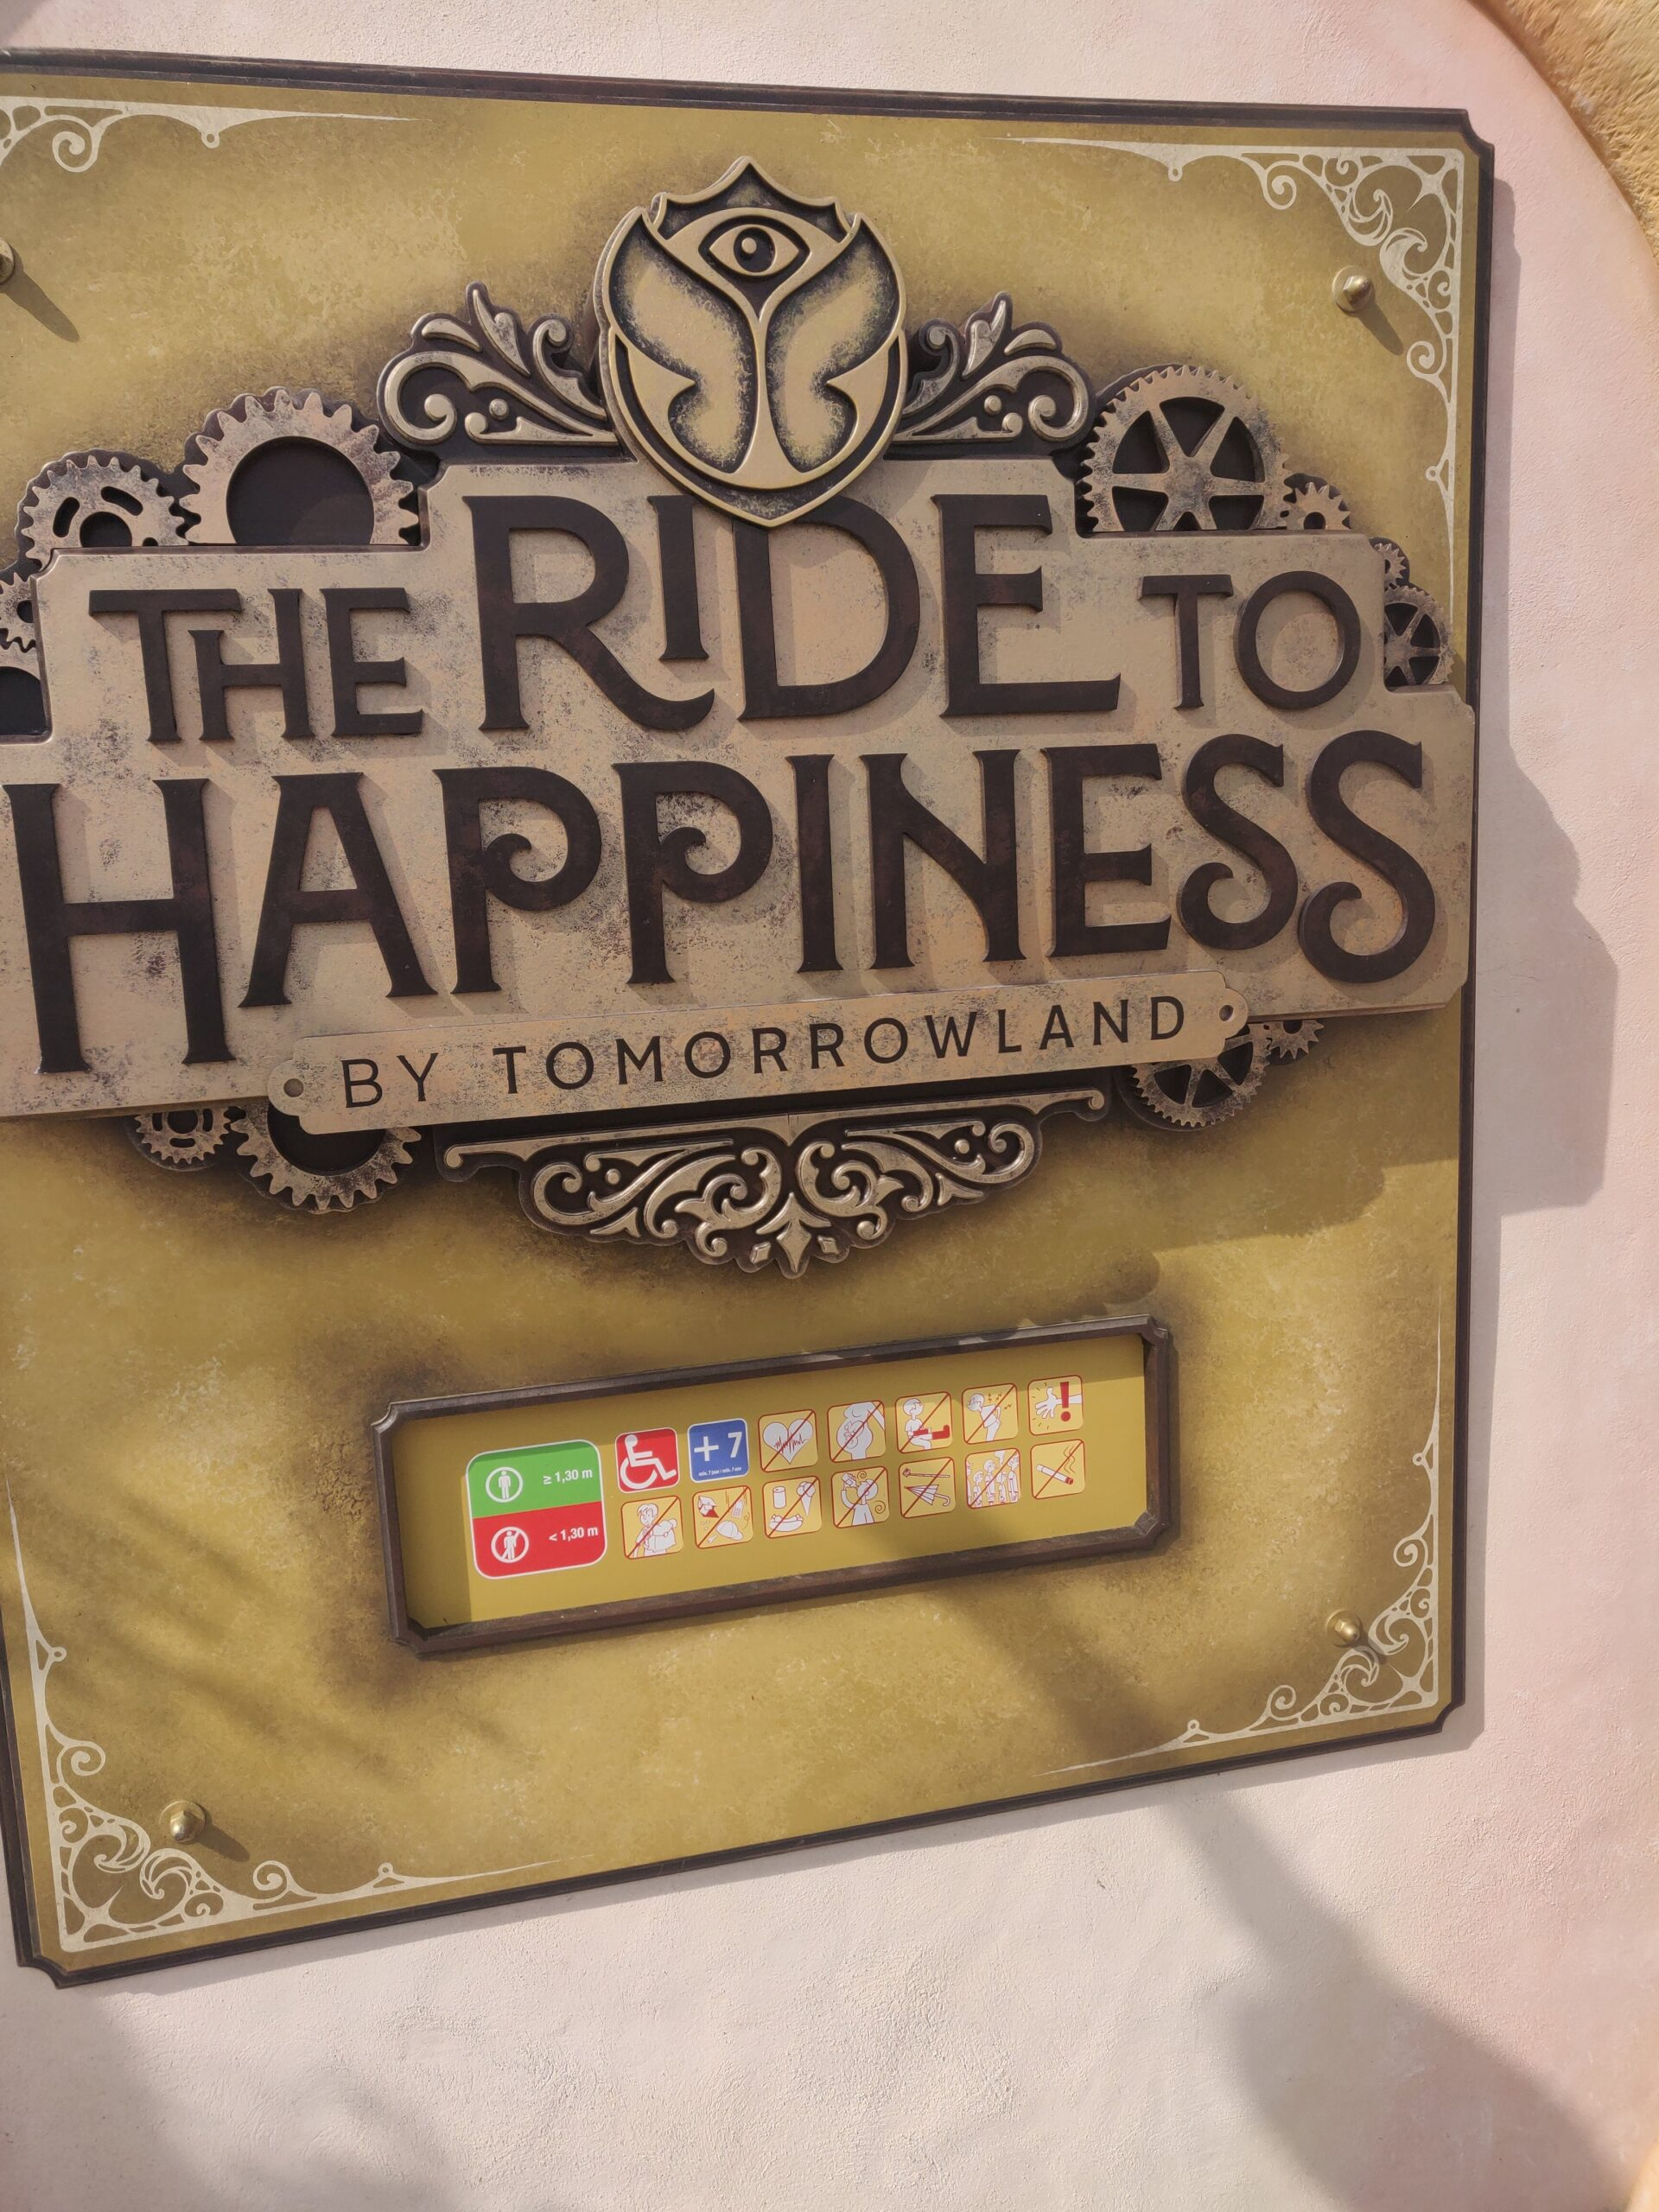 Plopsaland & The Ride To Happiness